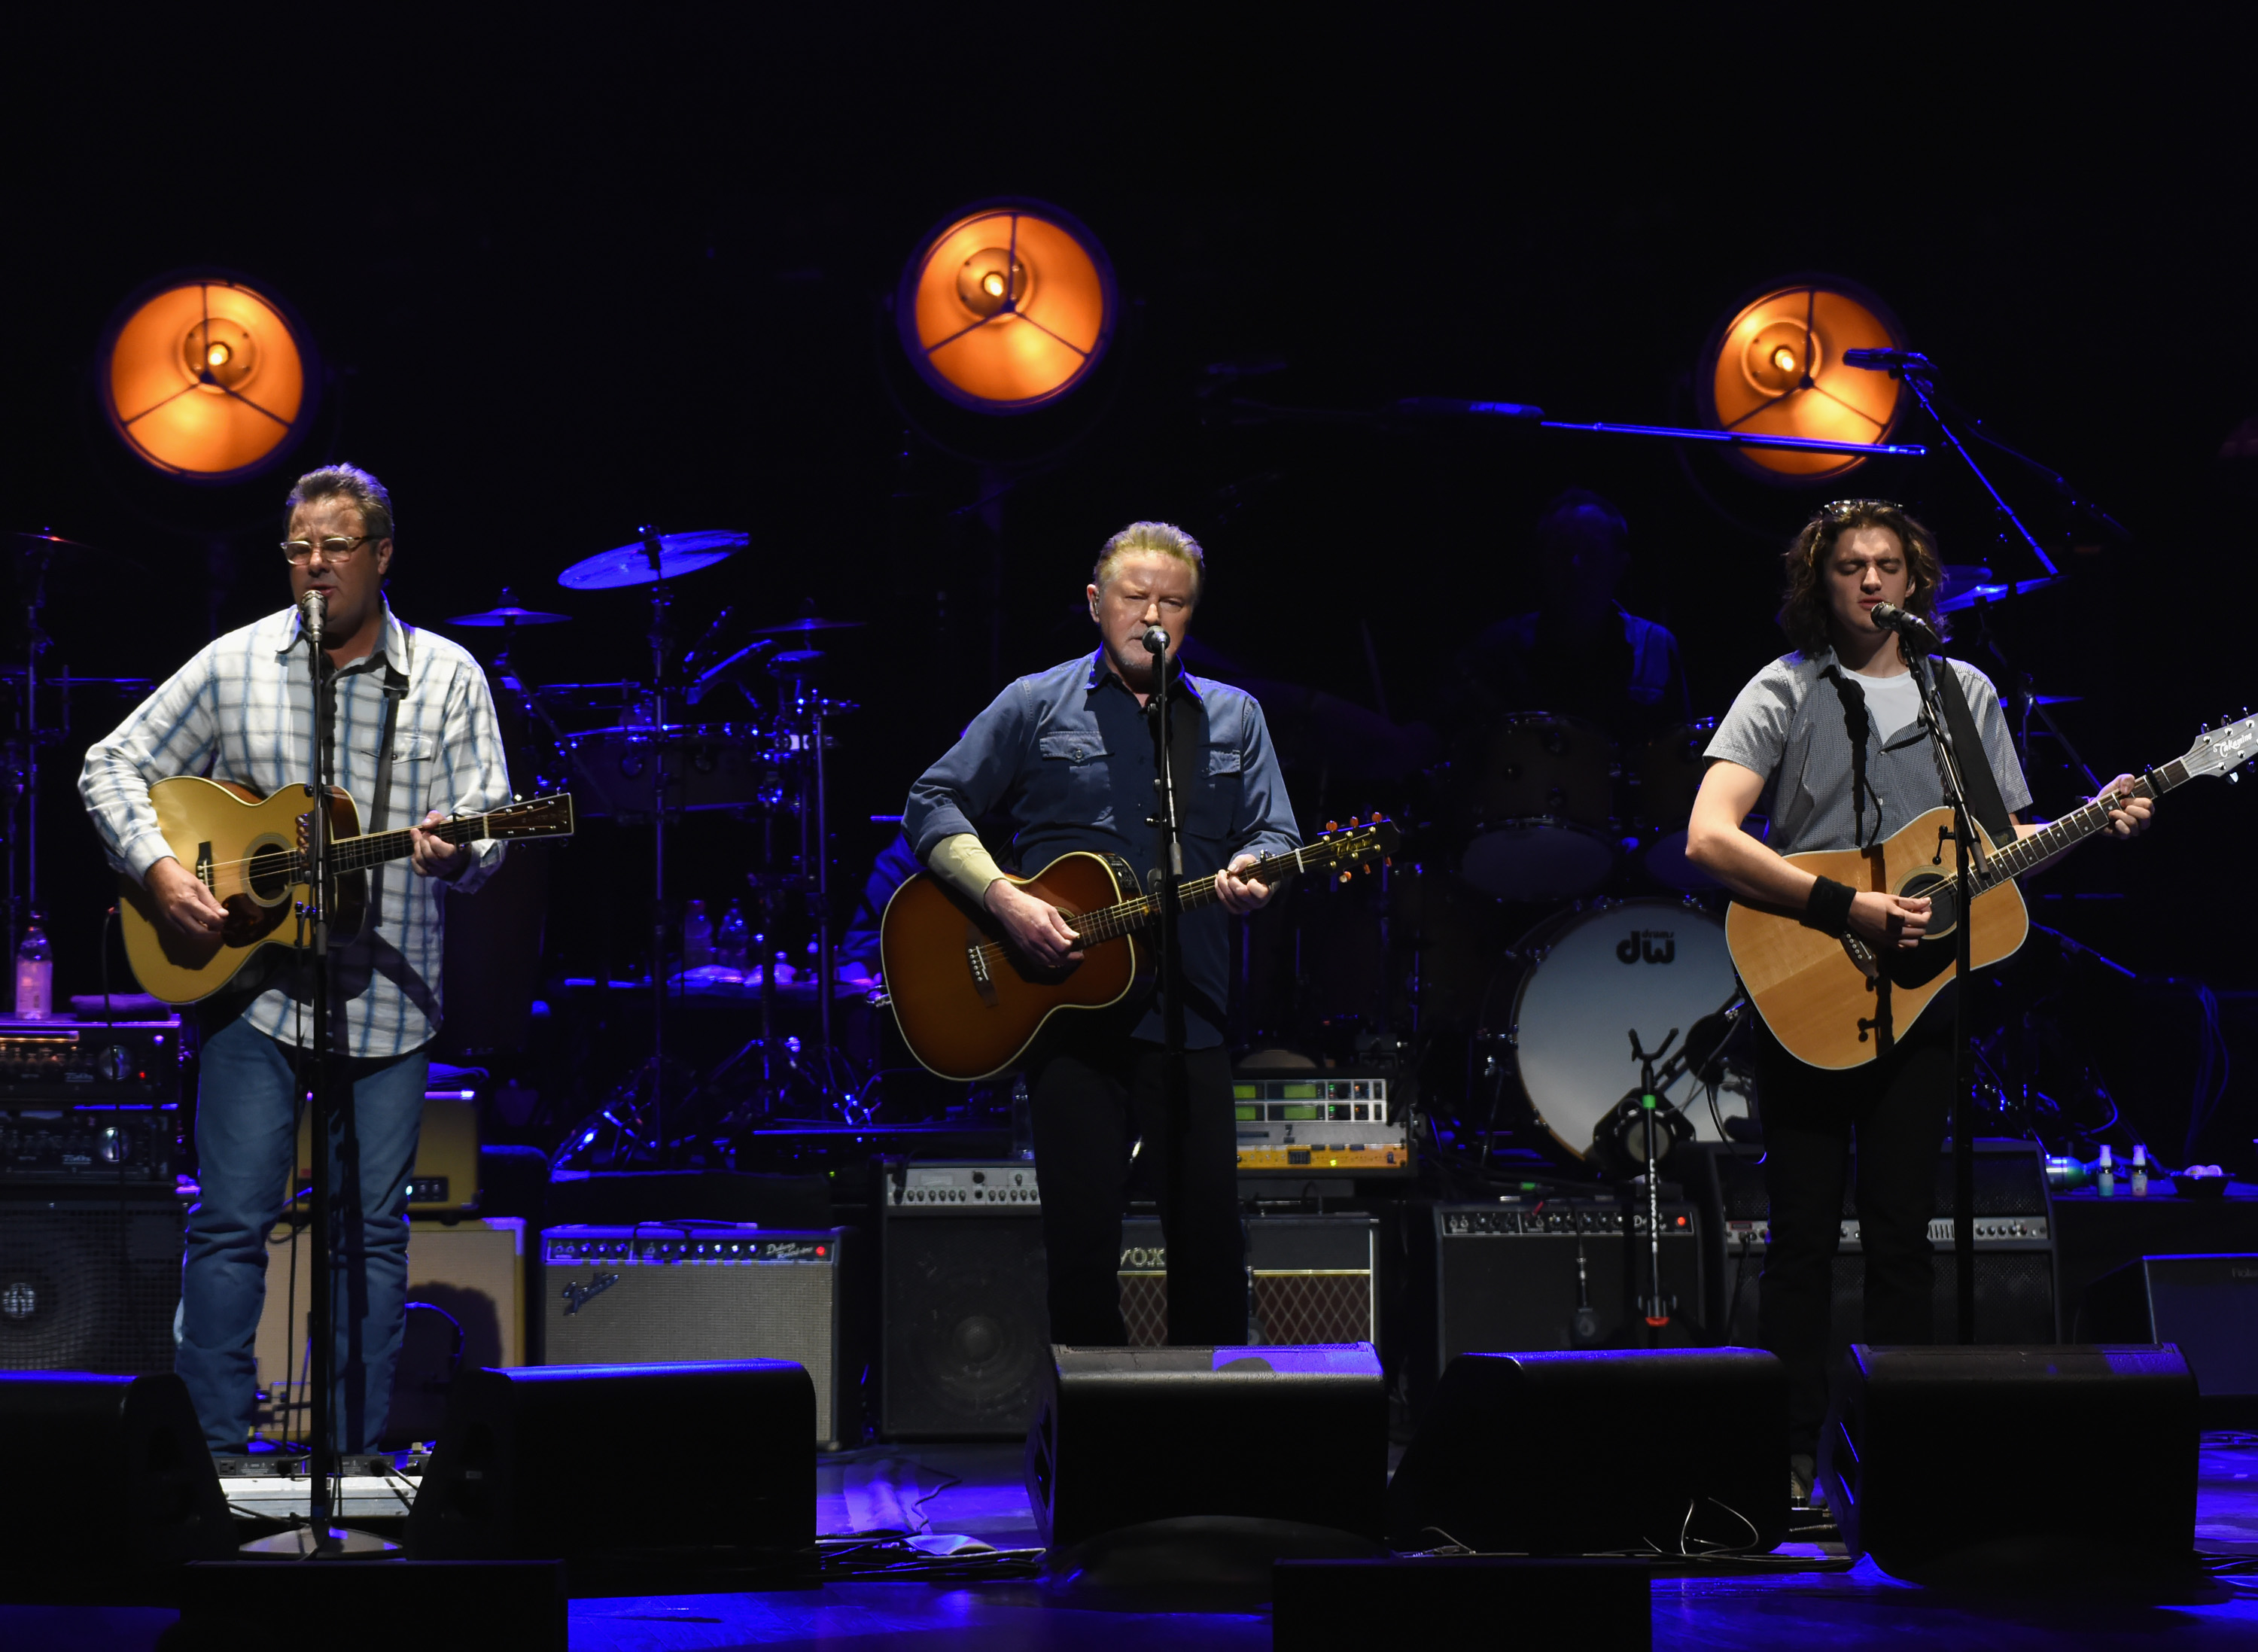 Eagles, Vince Gill, Don Henley and Deacon Frey perform during the Eagles in Concert at The Grand Ole Opry on October 29, 2017 in Nashville, Tennessee. (Image Source: Getty Images)